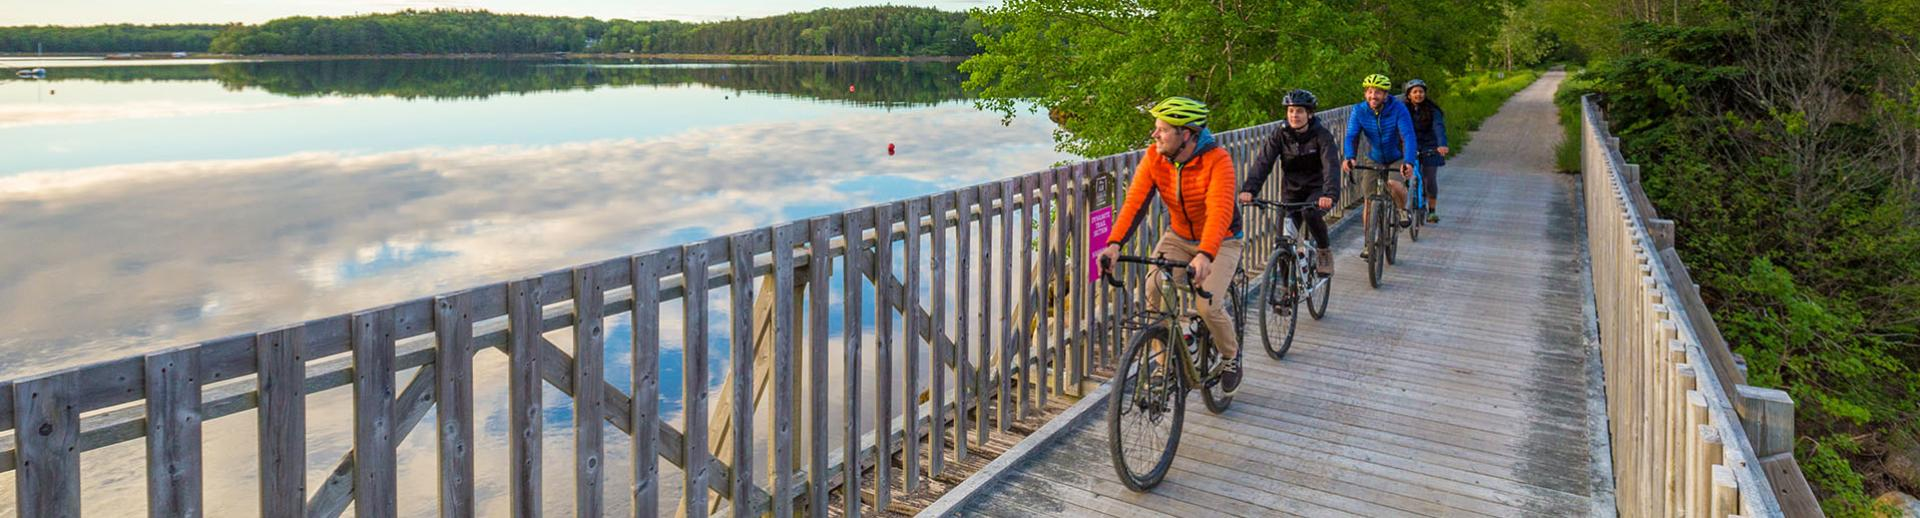 Cycling on the Rum Runners Trail, Nova Scotia